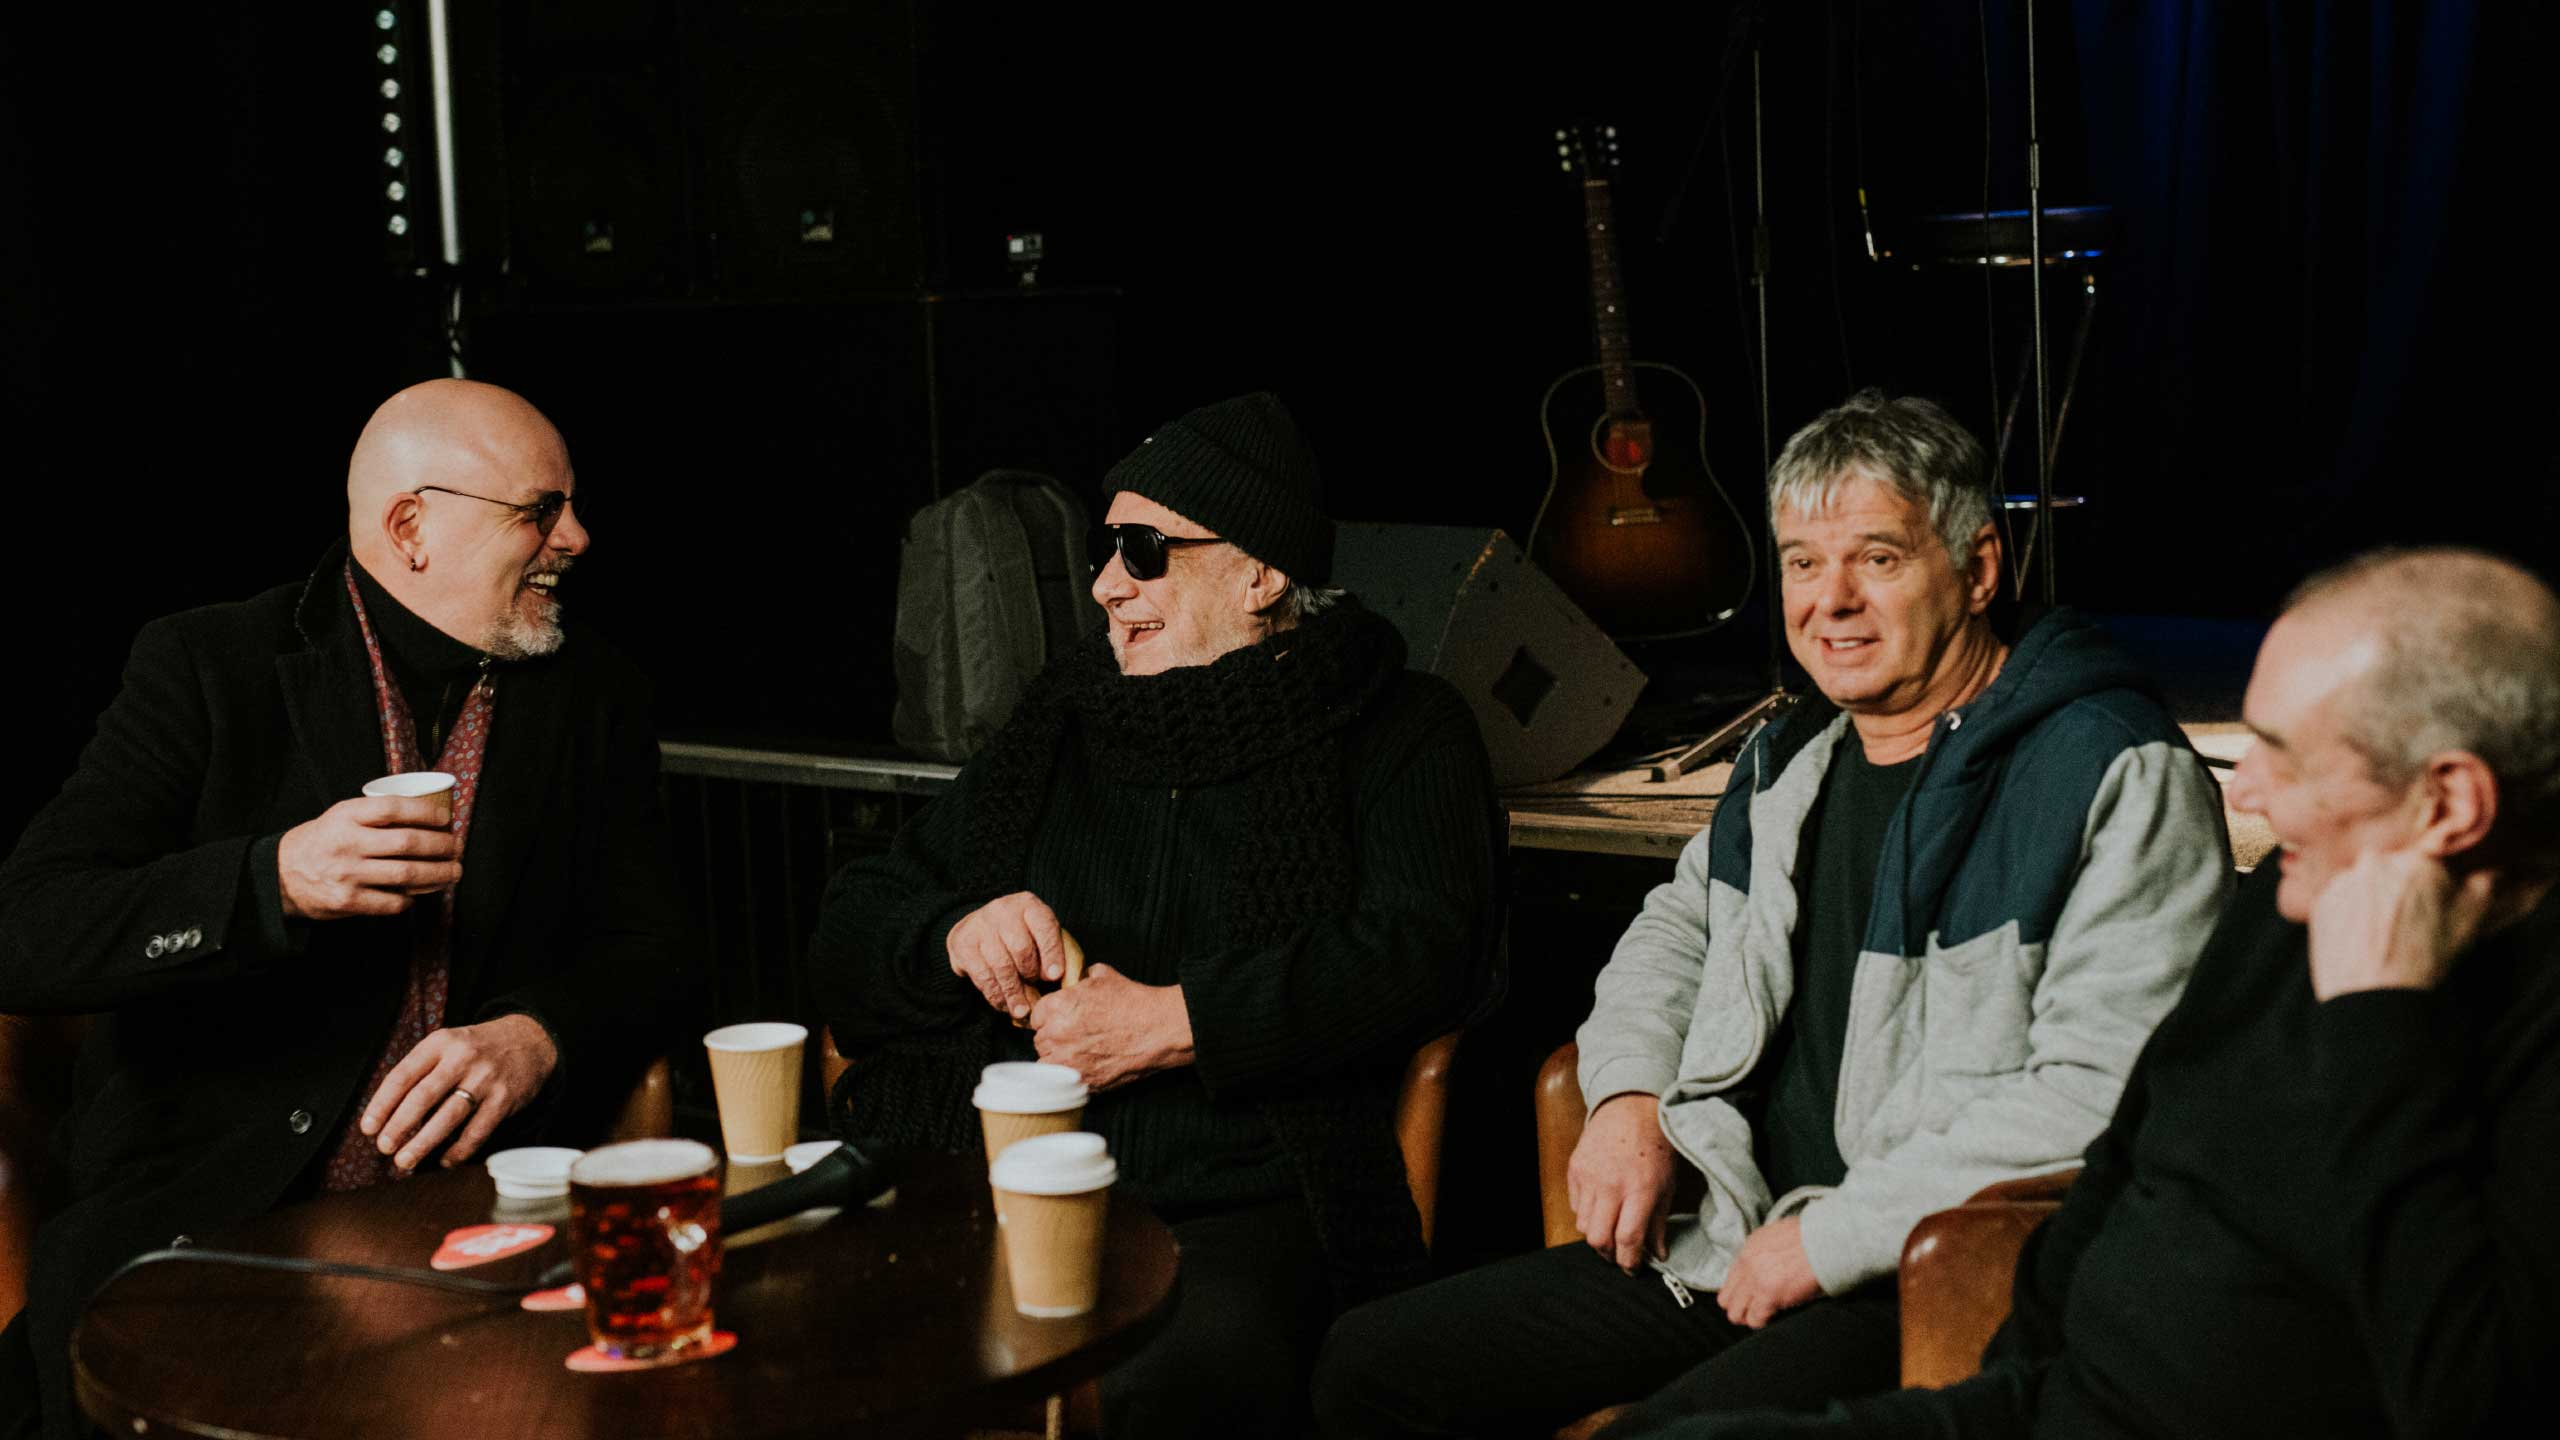 The Stranglers chatting at the Star In pub in Guildford